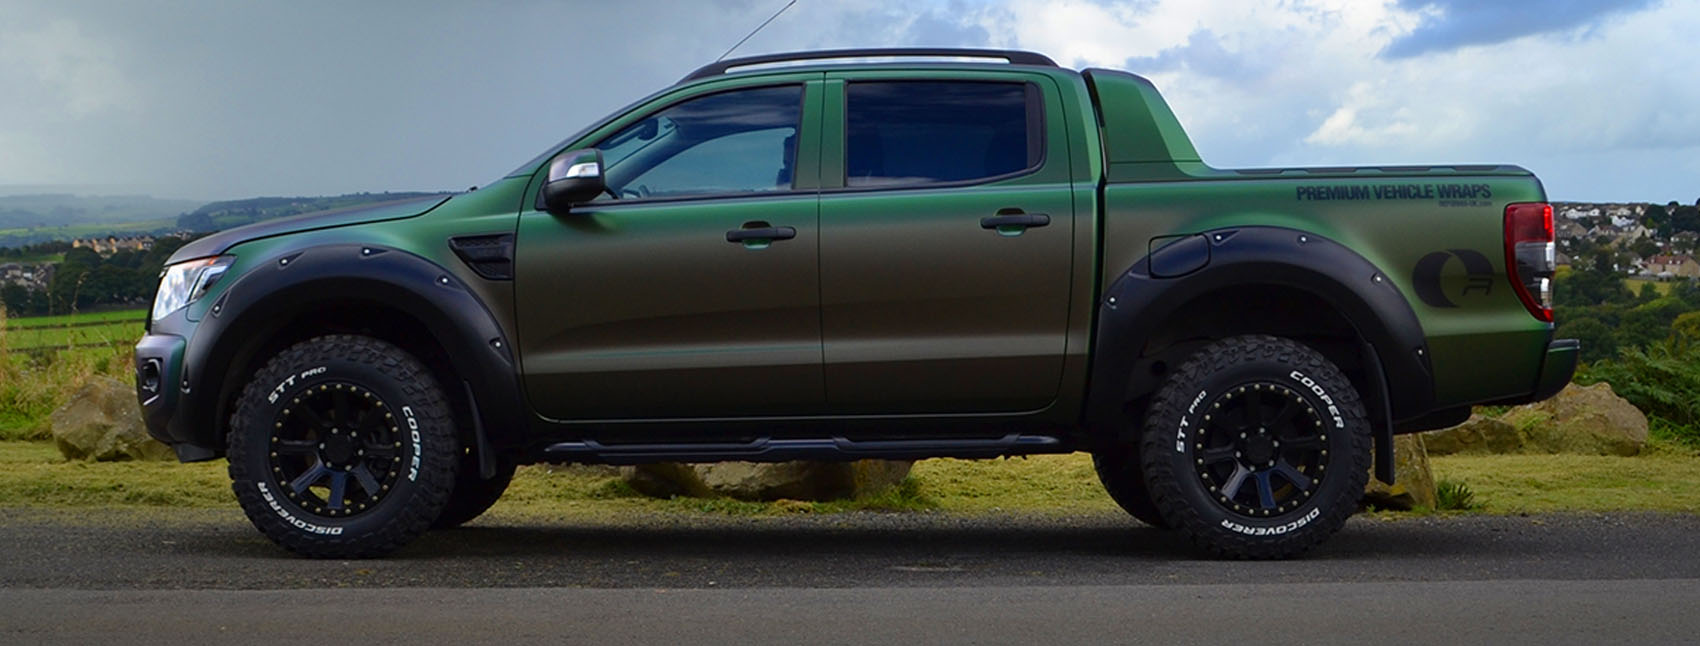 Ford Ranger Wraptor Reforma UK Banner